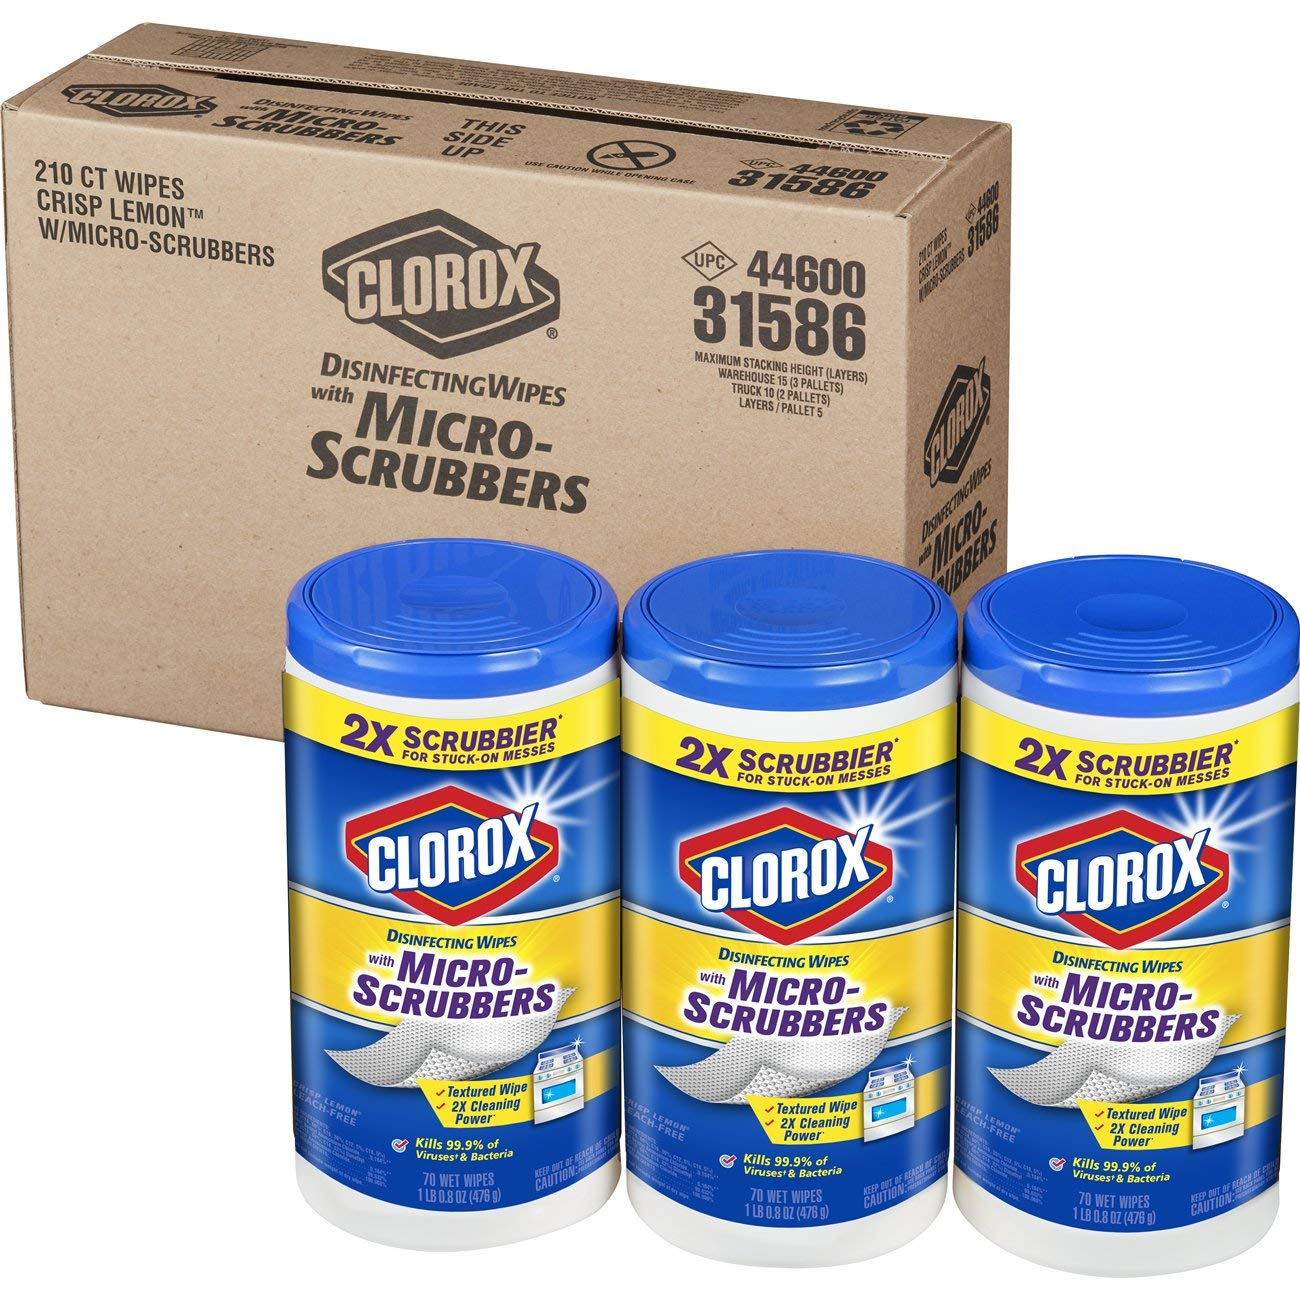 Clorox Disinfecting Wipes with Micro-Scrubbers, Bleach Free Cleaning Wipes - Crisp Lemon, 70 Count Each (Pack of 3) by Clorox (Image #10)